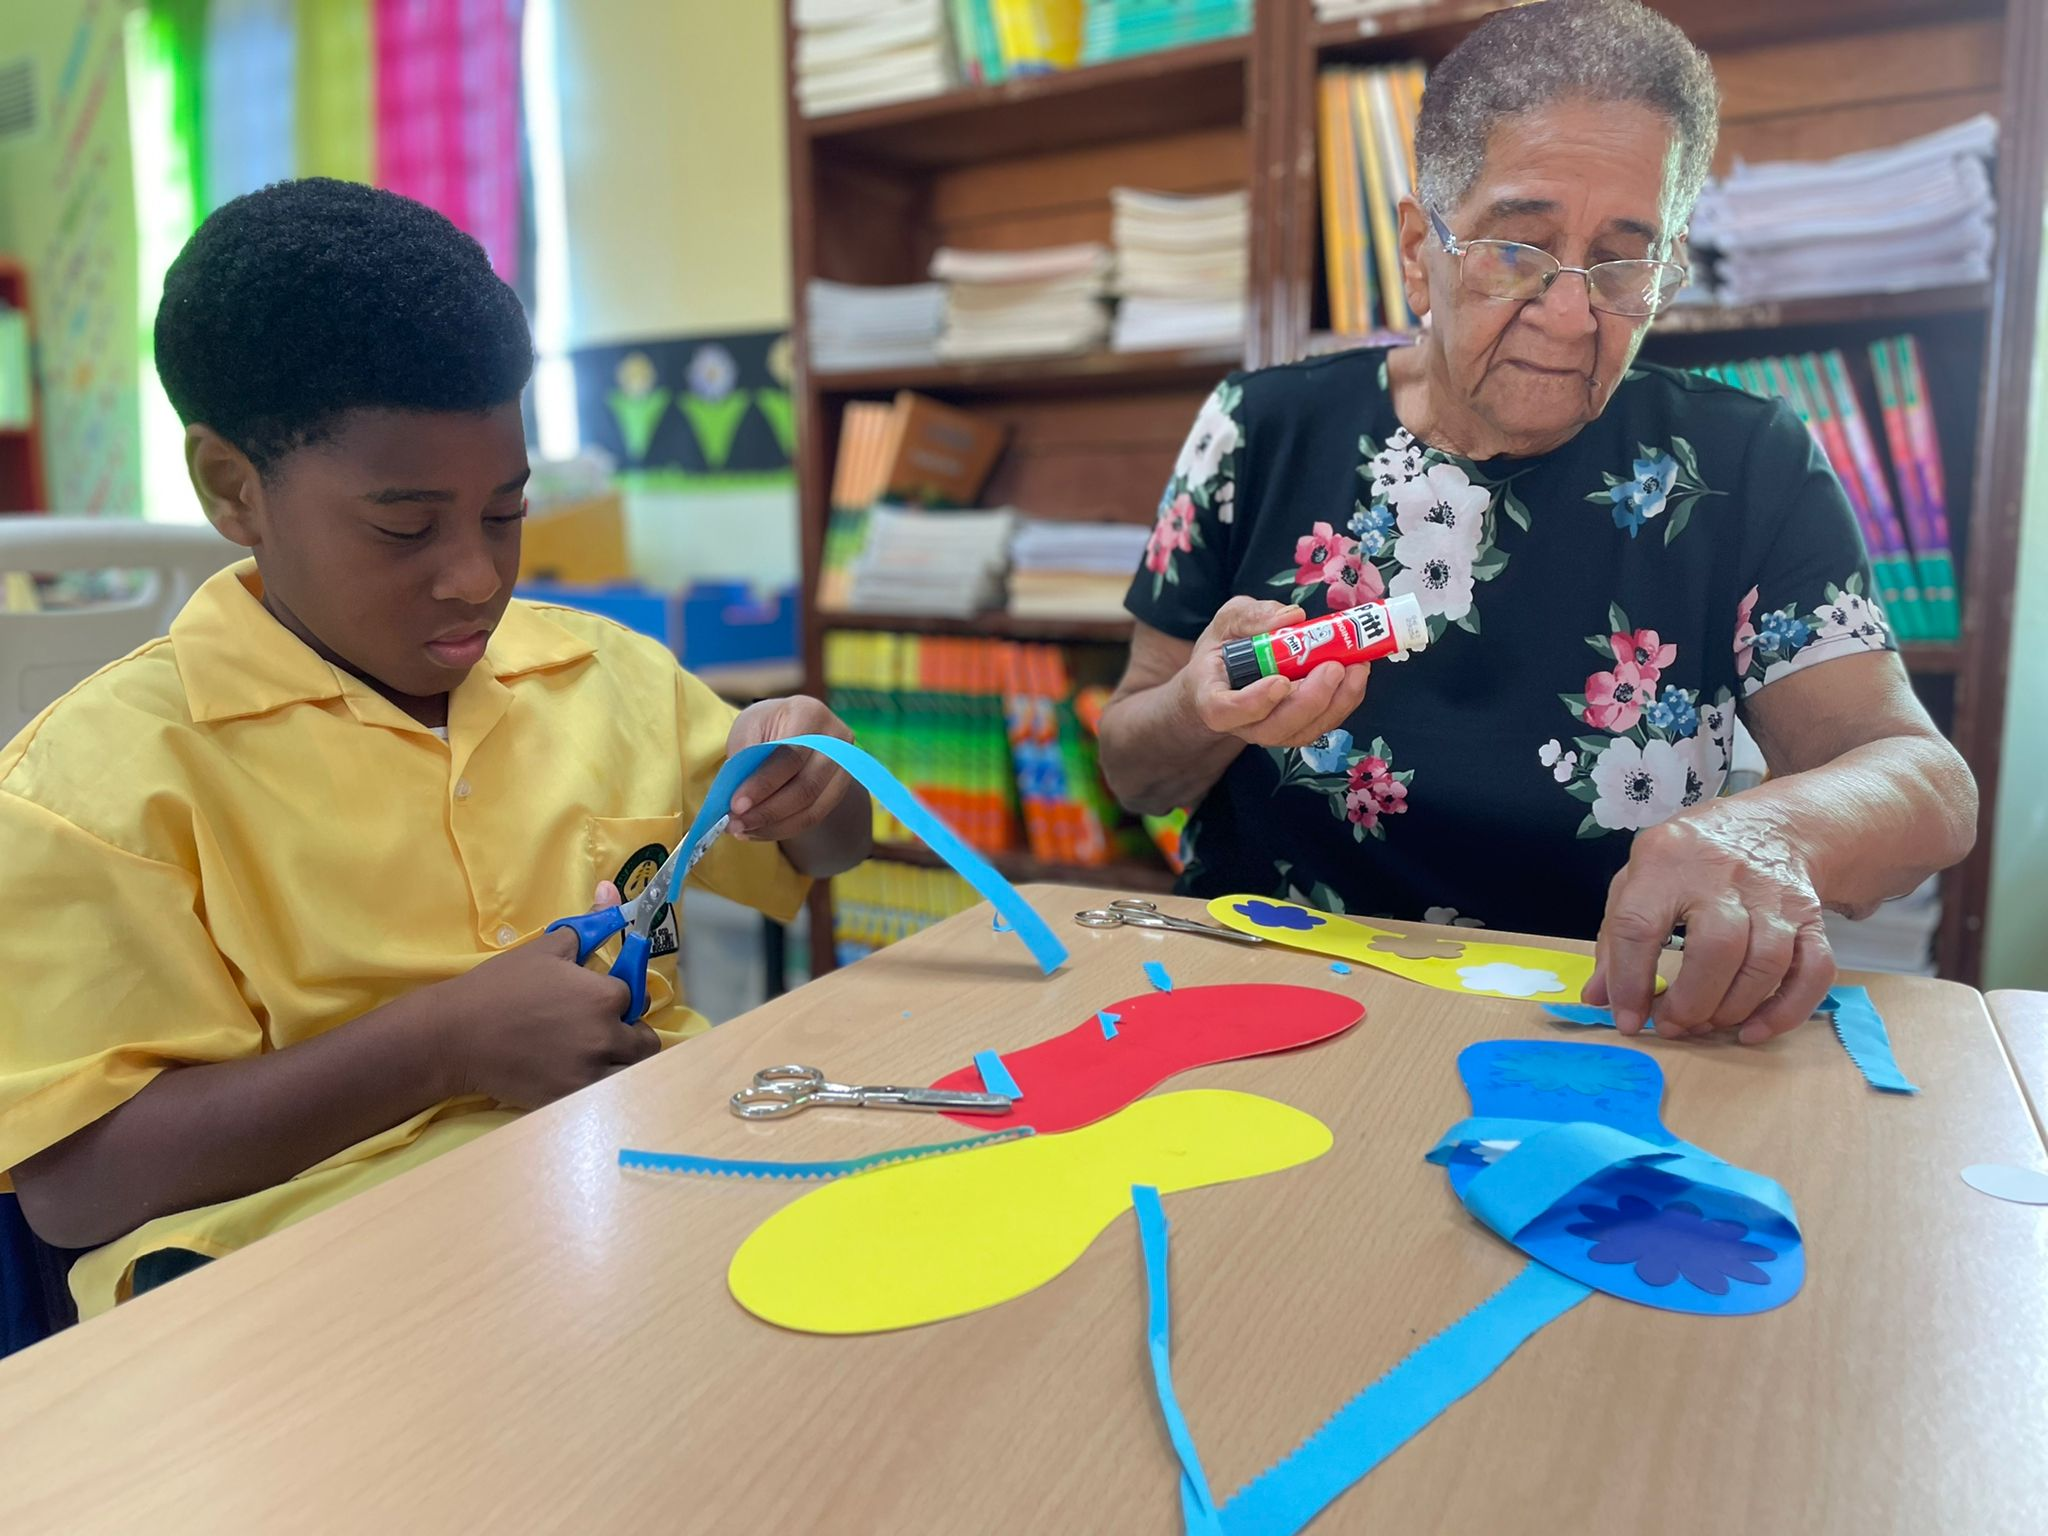 Grandparents Are Making a Difference